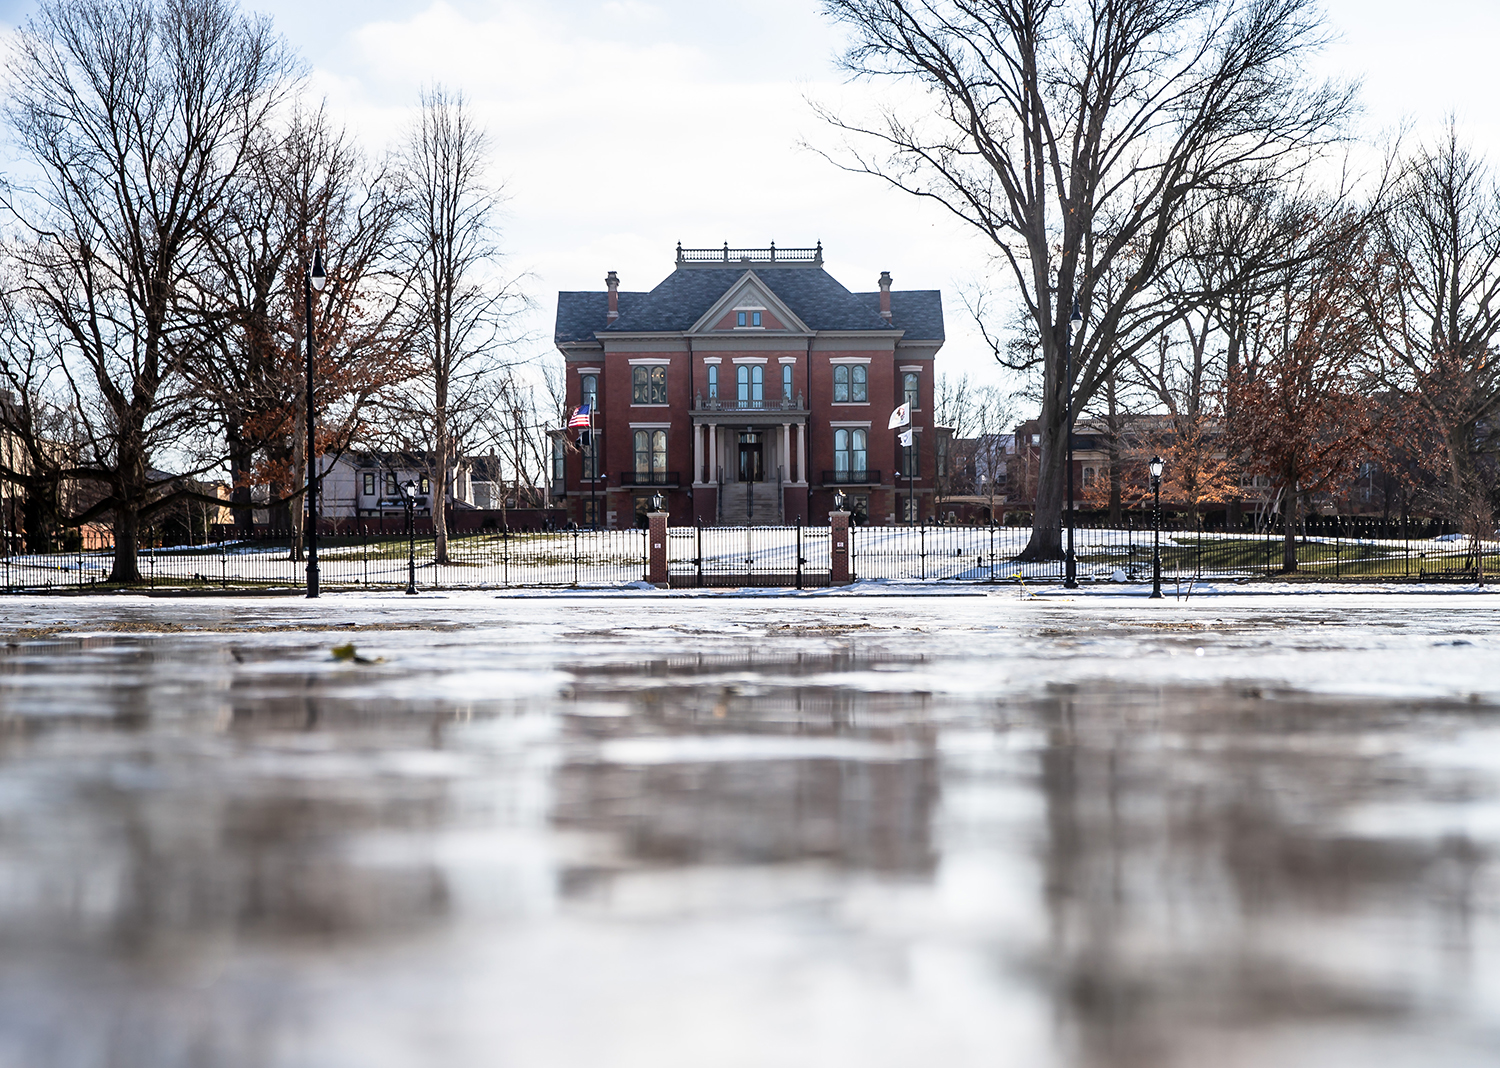 The Illinois Governor's Mansion is reflected in a layer of ice covering the Y-block, Thursday, Jan. 24, 2019, in Springfield, Ill. The week of weather that saw rain and melting snow followed by plummeting temperatures has created icy landscapes across the area. [Justin L. Fowler/The State Journal-Register]